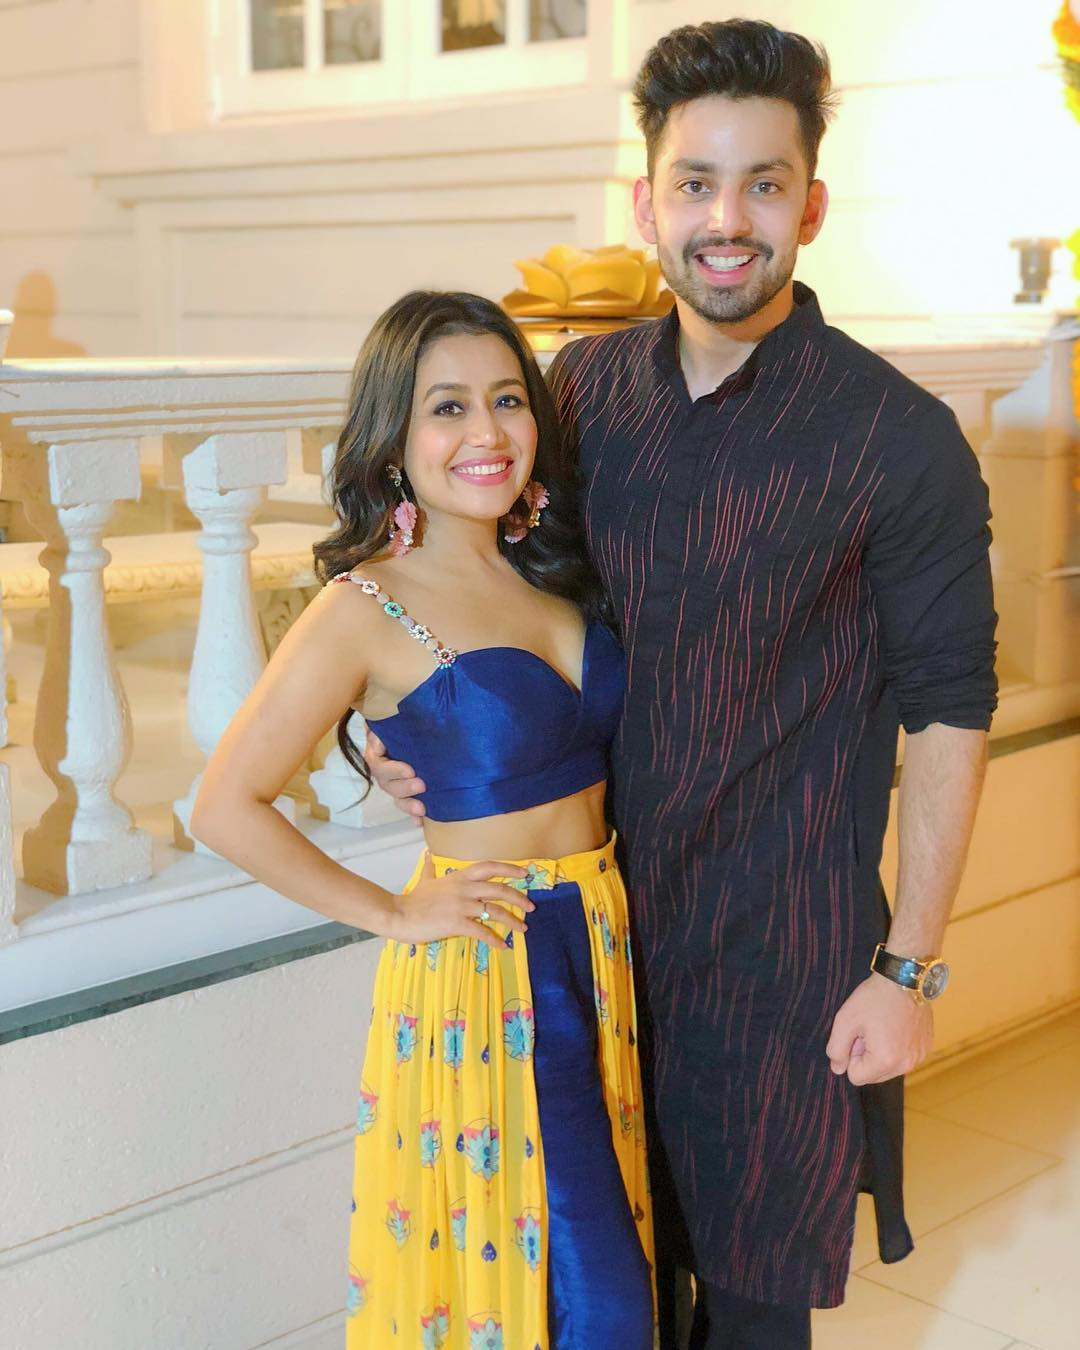 Is Himansh Kohli Still In Love With Neha Kakkar Read Why Himansh Still Has Their Couple Pictures On Social Media Celebrities News India Tv